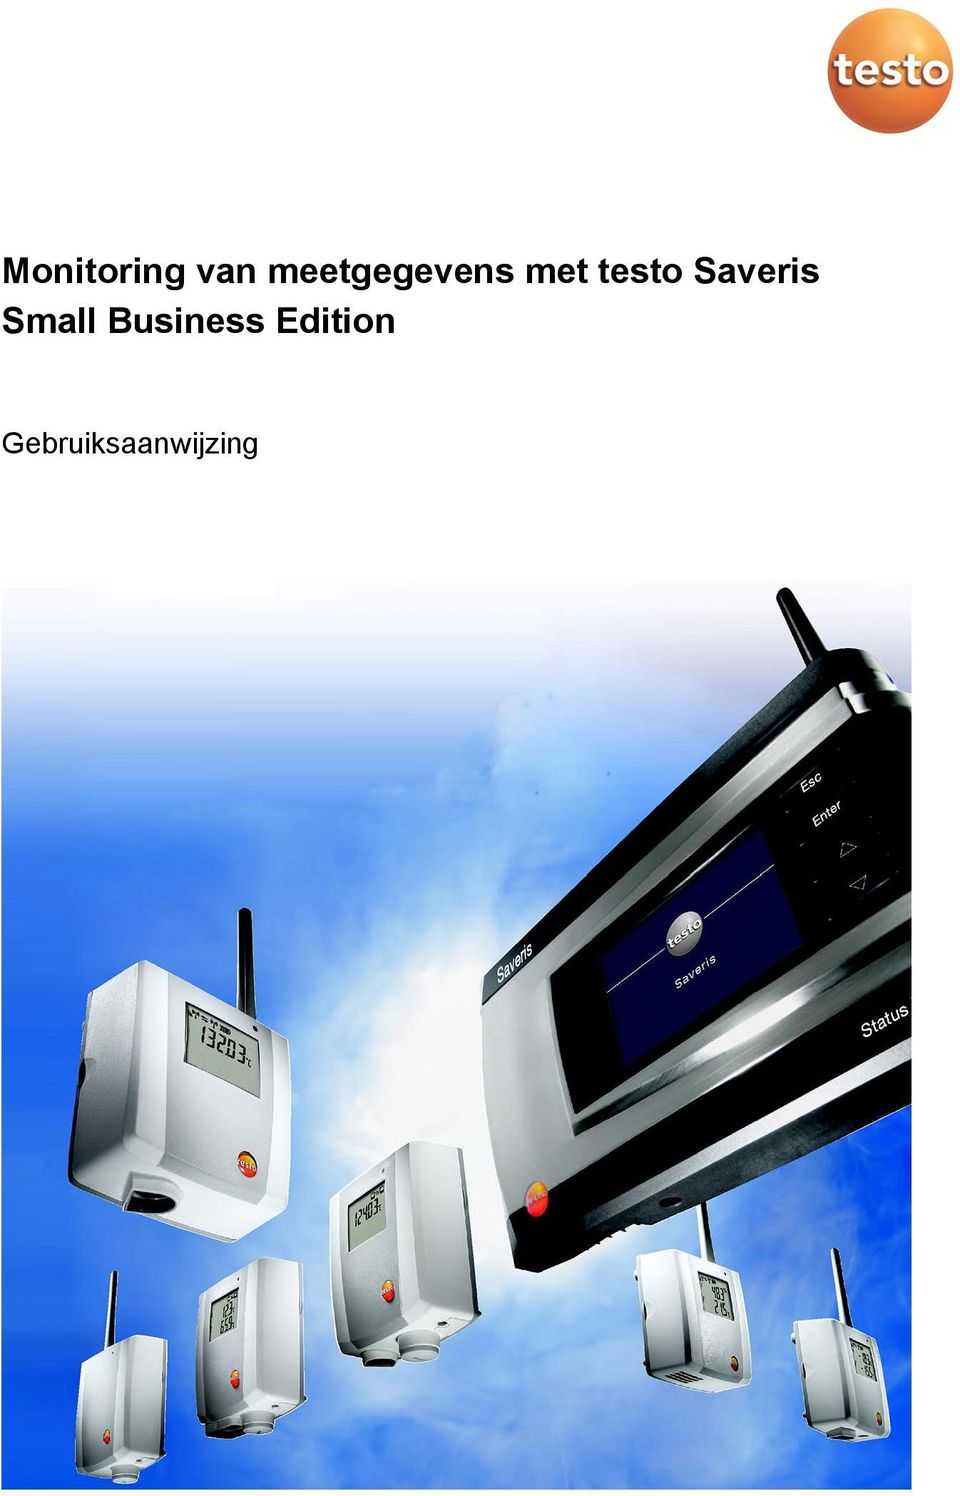 testo Saveris Small